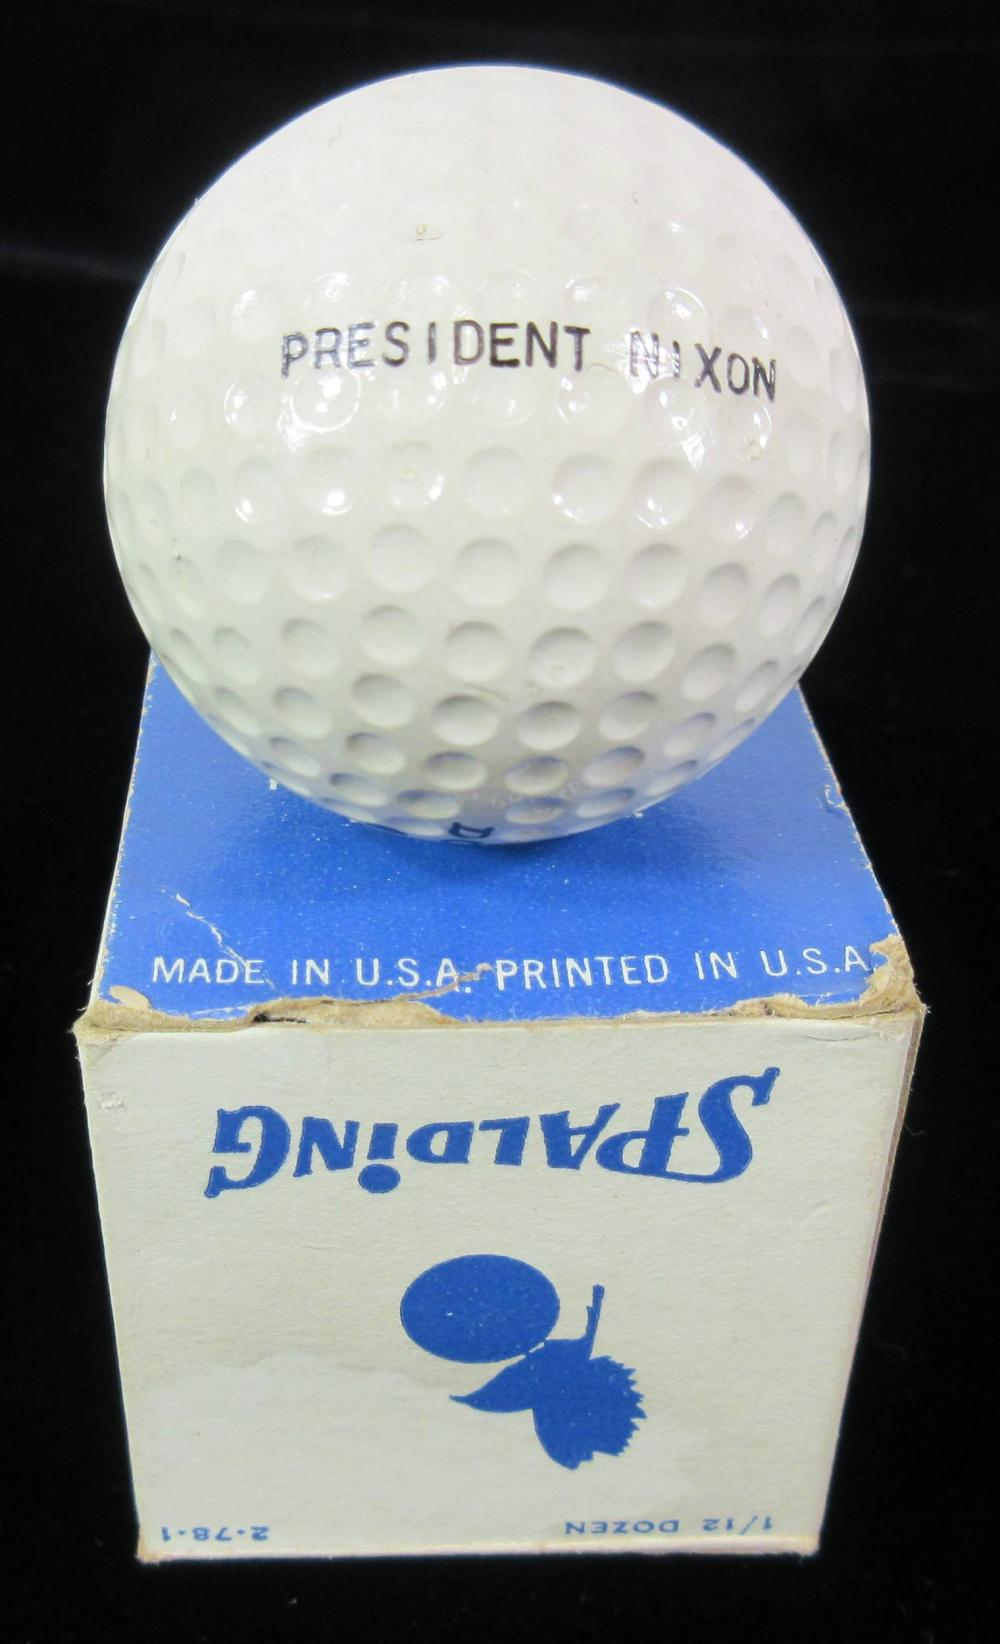 """""""President Nixon"""" Personally Owned & Used Golf Ball, with Outstanding Provenance"""